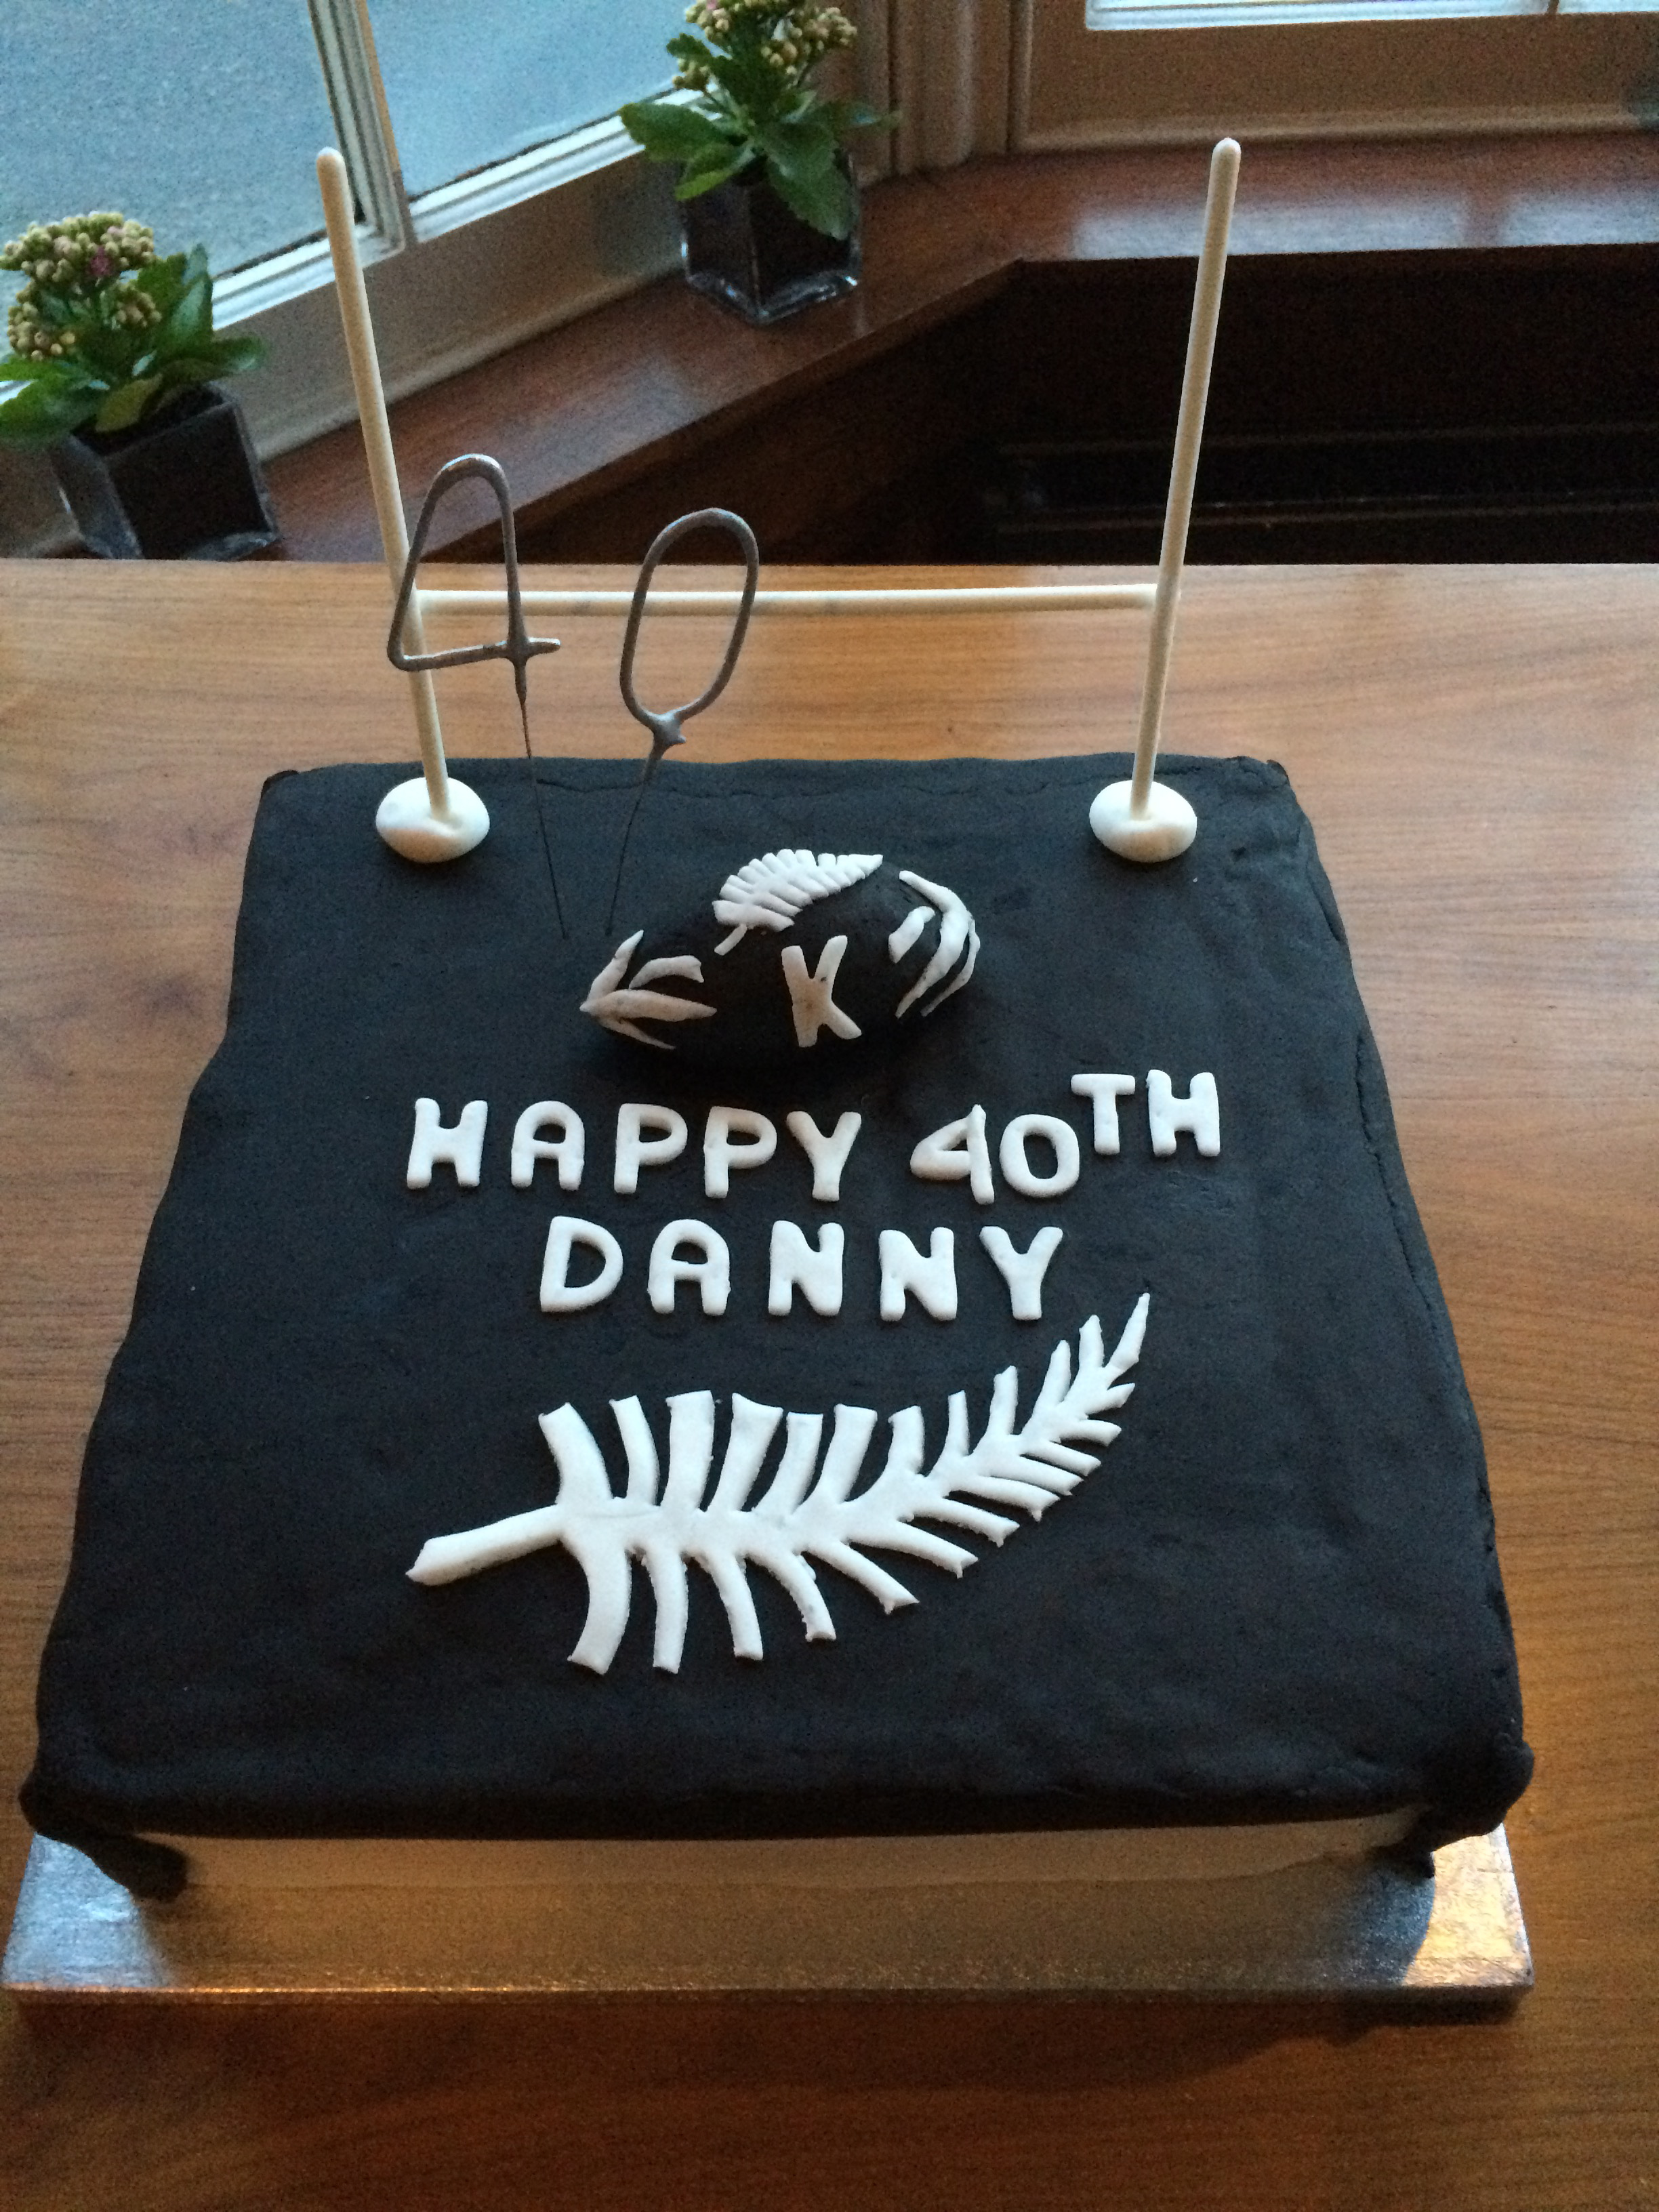 Week 15 an All Blacks themed 40th birthday cake Its not easy